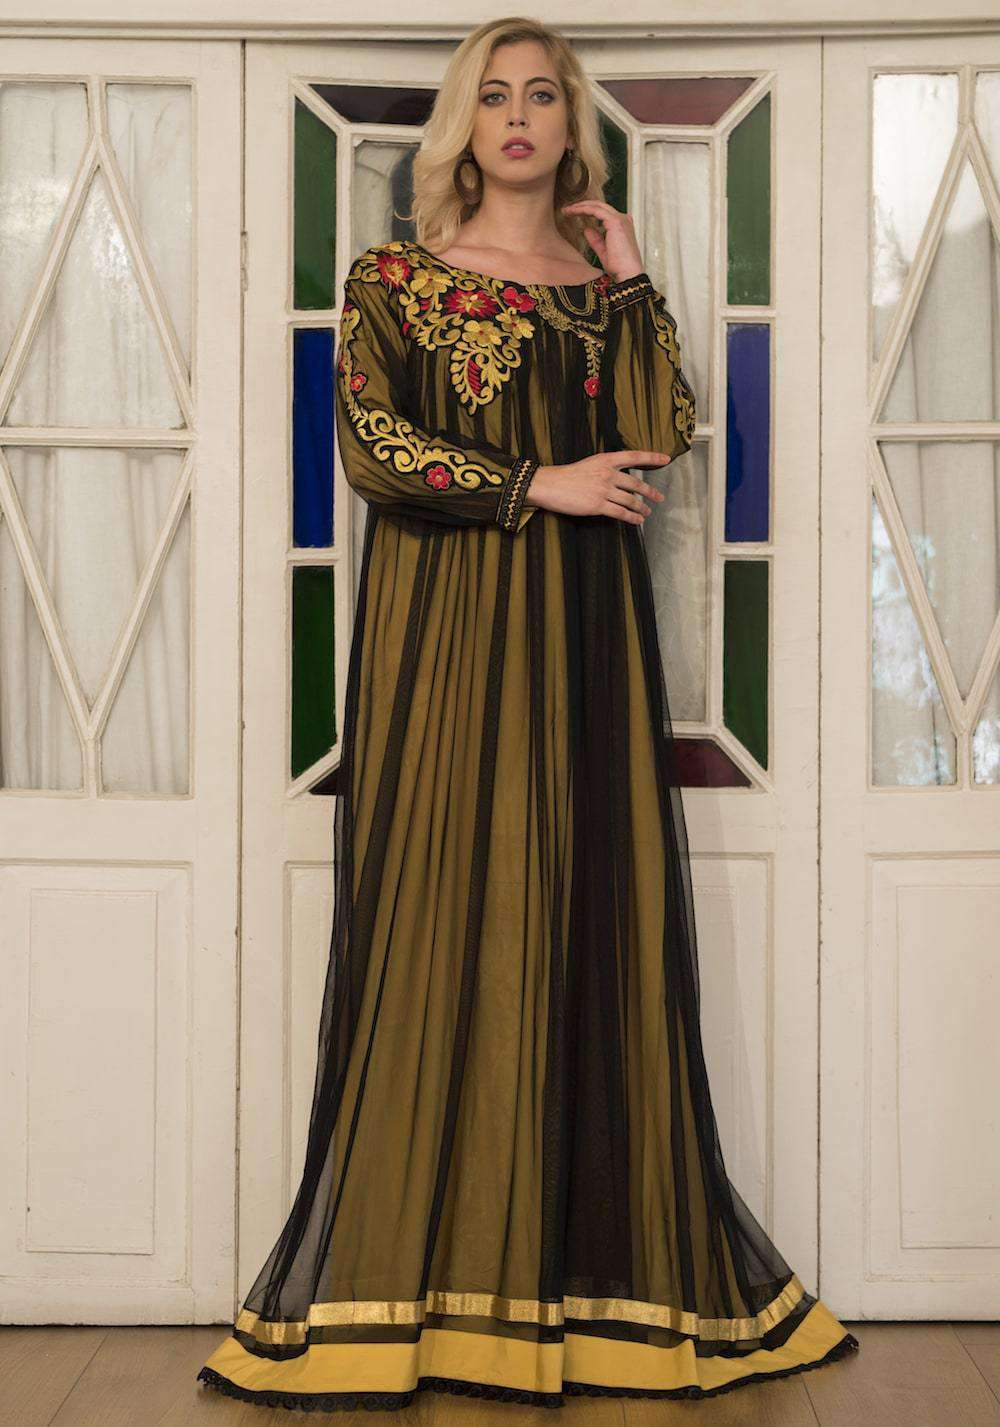 Gold & Yellow Embroidered Full Sleeve Formal Wedding Islamic Dress MYPF1268